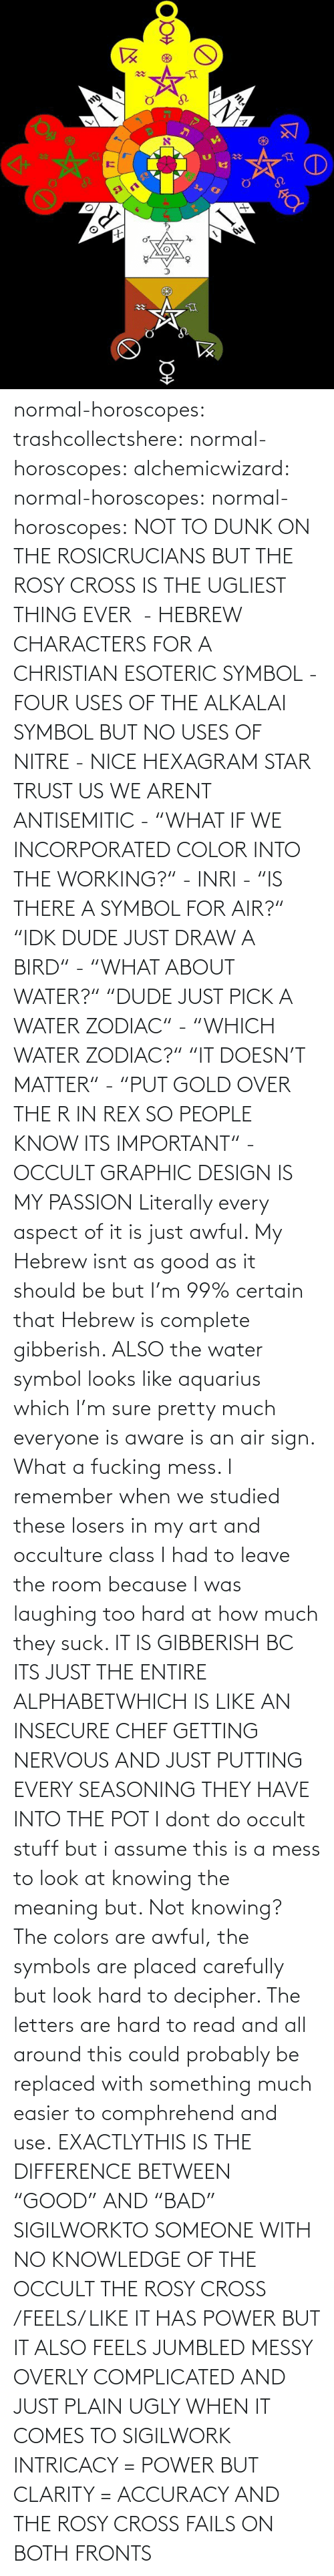 "But No: normal-horoscopes:  trashcollectshere: normal-horoscopes:   alchemicwizard:  normal-horoscopes:  normal-horoscopes: NOT TO DUNK ON THE ROSICRUCIANS BUT THE ROSY CROSS IS THE UGLIEST THING EVER  - HEBREW CHARACTERS FOR A CHRISTIAN ESOTERIC SYMBOL - FOUR USES OF THE ALKALAI SYMBOL BUT NO USES OF NITRE - NICE HEXAGRAM STAR TRUST US WE ARENT ANTISEMITIC - ""WHAT IF WE INCORPORATED COLOR INTO THE WORKING?"" - INRI - ""IS THERE A SYMBOL FOR AIR?"" ""IDK DUDE JUST DRAW A BIRD"" - ""WHAT ABOUT WATER?"" ""DUDE JUST PICK A WATER ZODIAC"" - ""WHICH WATER ZODIAC?"" ""IT DOESN'T MATTER"" - ""PUT GOLD OVER THE R IN REX SO PEOPLE KNOW ITS IMPORTANT"" - OCCULT GRAPHIC DESIGN IS MY PASSION  Literally every aspect of it is just awful. My Hebrew isnt as good as it should be but I'm 99% certain that Hebrew is complete gibberish.  ALSO the water symbol looks like aquarius which I'm sure pretty much everyone is aware is an air sign. What a fucking mess.  I remember when we studied these losers in my art and occulture class I had to leave the room because I was laughing too hard at how much they suck.   IT IS GIBBERISH BC ITS JUST THE ENTIRE ALPHABETWHICH IS LIKE AN INSECURE CHEF GETTING NERVOUS AND JUST PUTTING EVERY SEASONING THEY HAVE INTO THE POT     I dont do occult stuff but i assume this is a mess to look at knowing the meaning but. Not knowing? The colors are awful, the symbols are placed carefully but look hard to decipher. The letters are hard to read and all around this could probably be replaced with something much easier to comphrehend and use.  EXACTLYTHIS IS THE DIFFERENCE BETWEEN ""GOOD"" AND ""BAD"" SIGILWORKTO SOMEONE WITH NO KNOWLEDGE OF THE OCCULT THE ROSY CROSS /FEELS/ LIKE IT HAS POWER BUT IT ALSO FEELS JUMBLED MESSY OVERLY COMPLICATED AND JUST PLAIN UGLY WHEN IT COMES TO SIGILWORK INTRICACY = POWER BUT CLARITY = ACCURACY AND THE ROSY CROSS FAILS ON BOTH FRONTS"